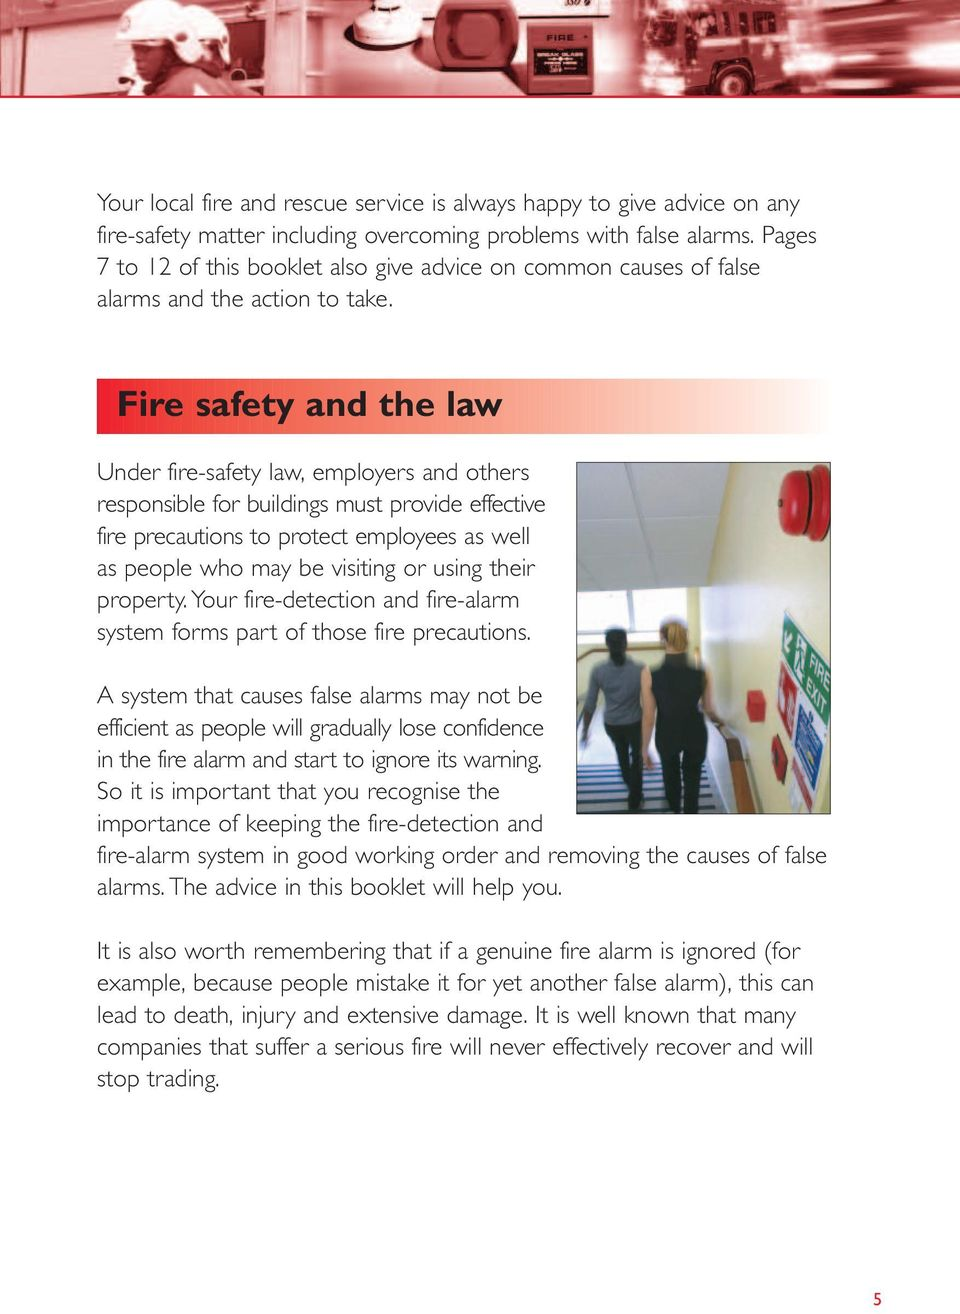 Fire safety and the law Under fire-safety law, employers and others responsible for buildings must provide effective fire precautions to protect employees as well as people who may be visiting or